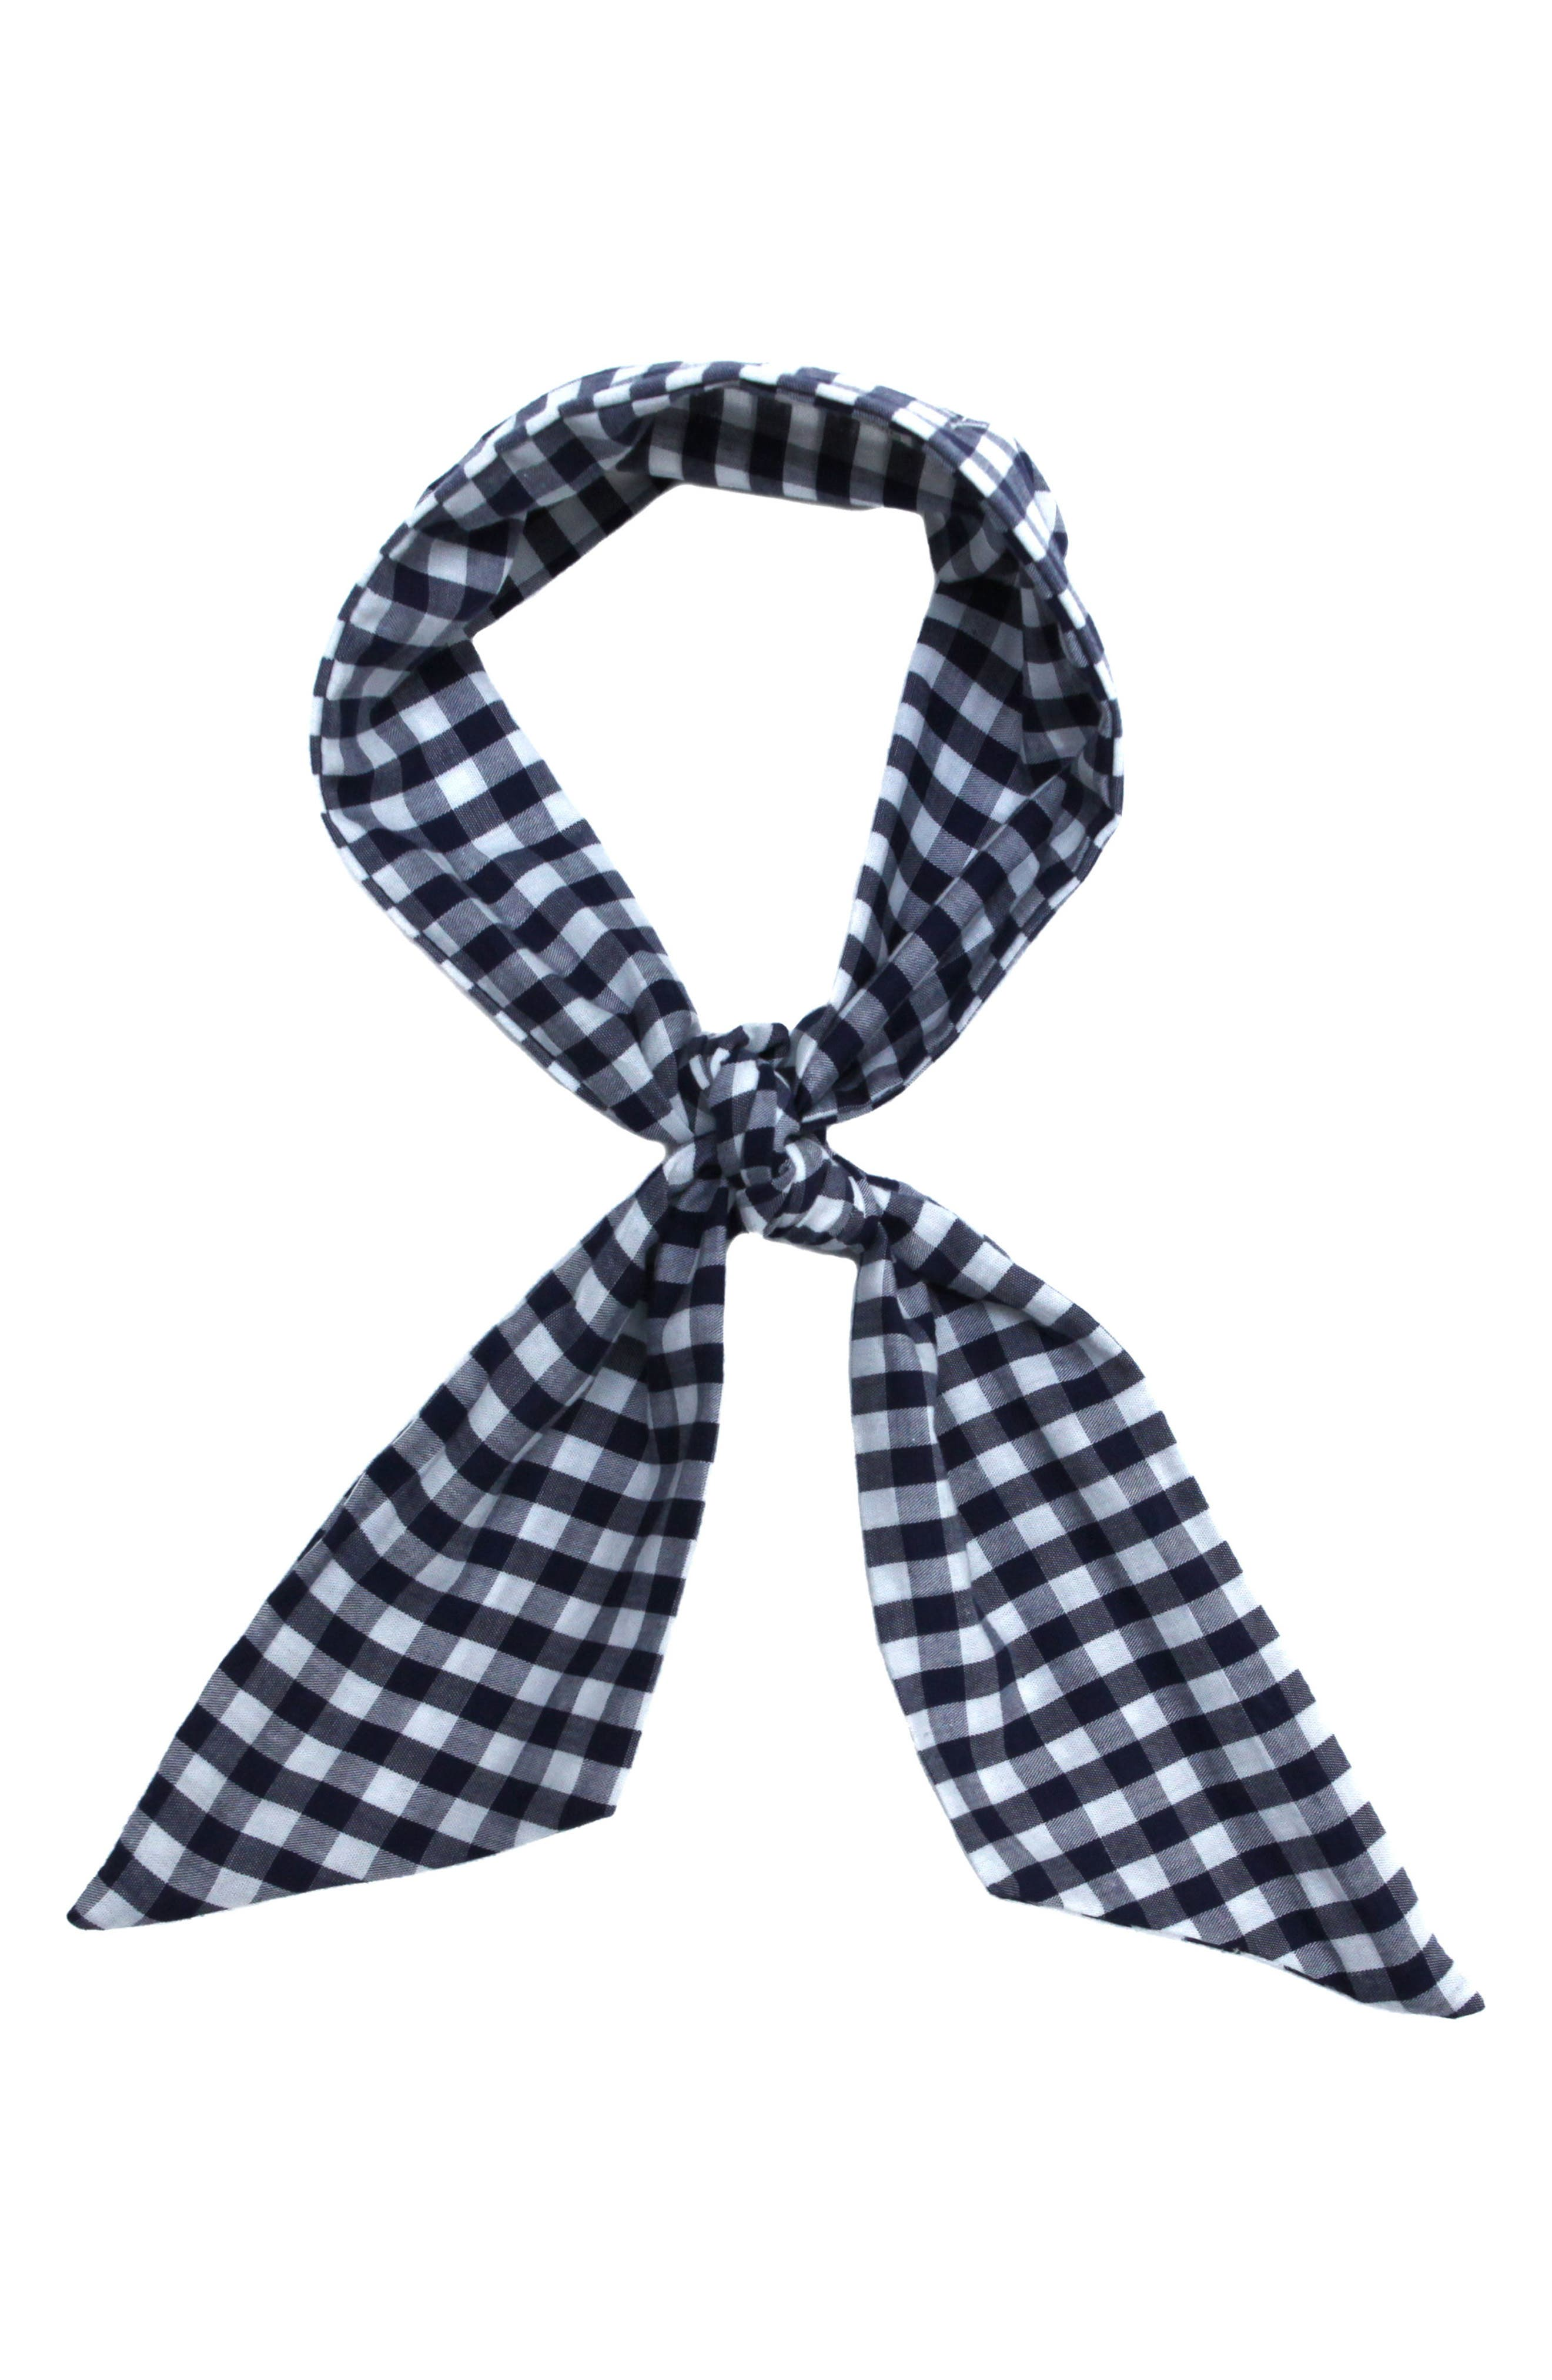 Donni Charm Gingham Wire Scarf